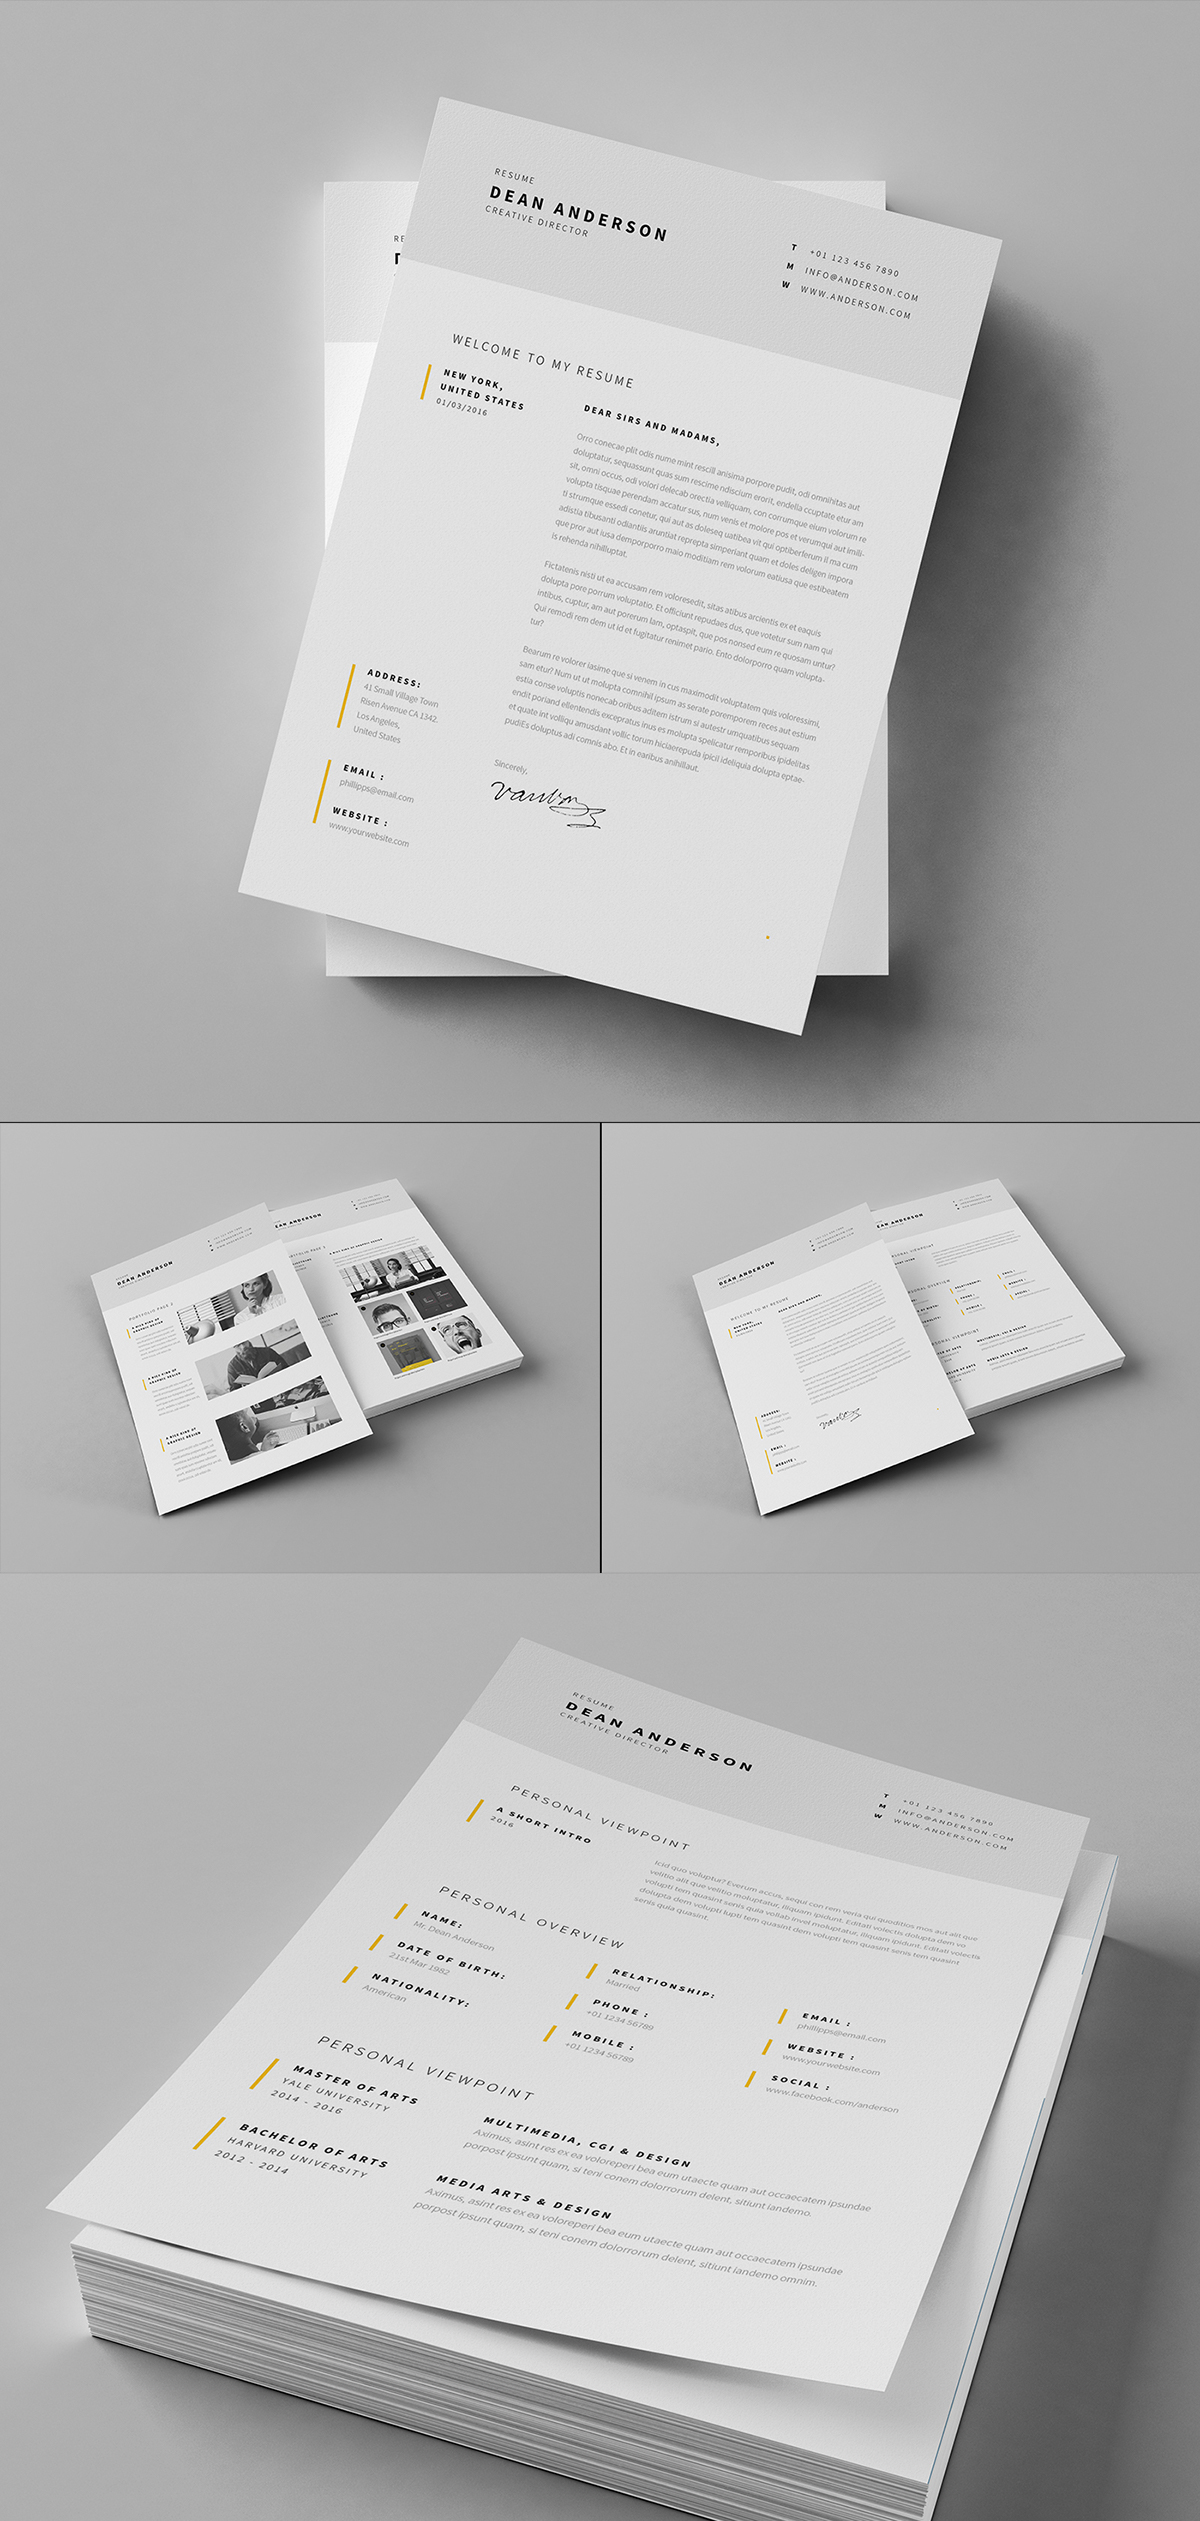 Minimal Resume / CV / Curriculum Vitae / 7 Pages On Behance  Resume Or Curriculum Vitae